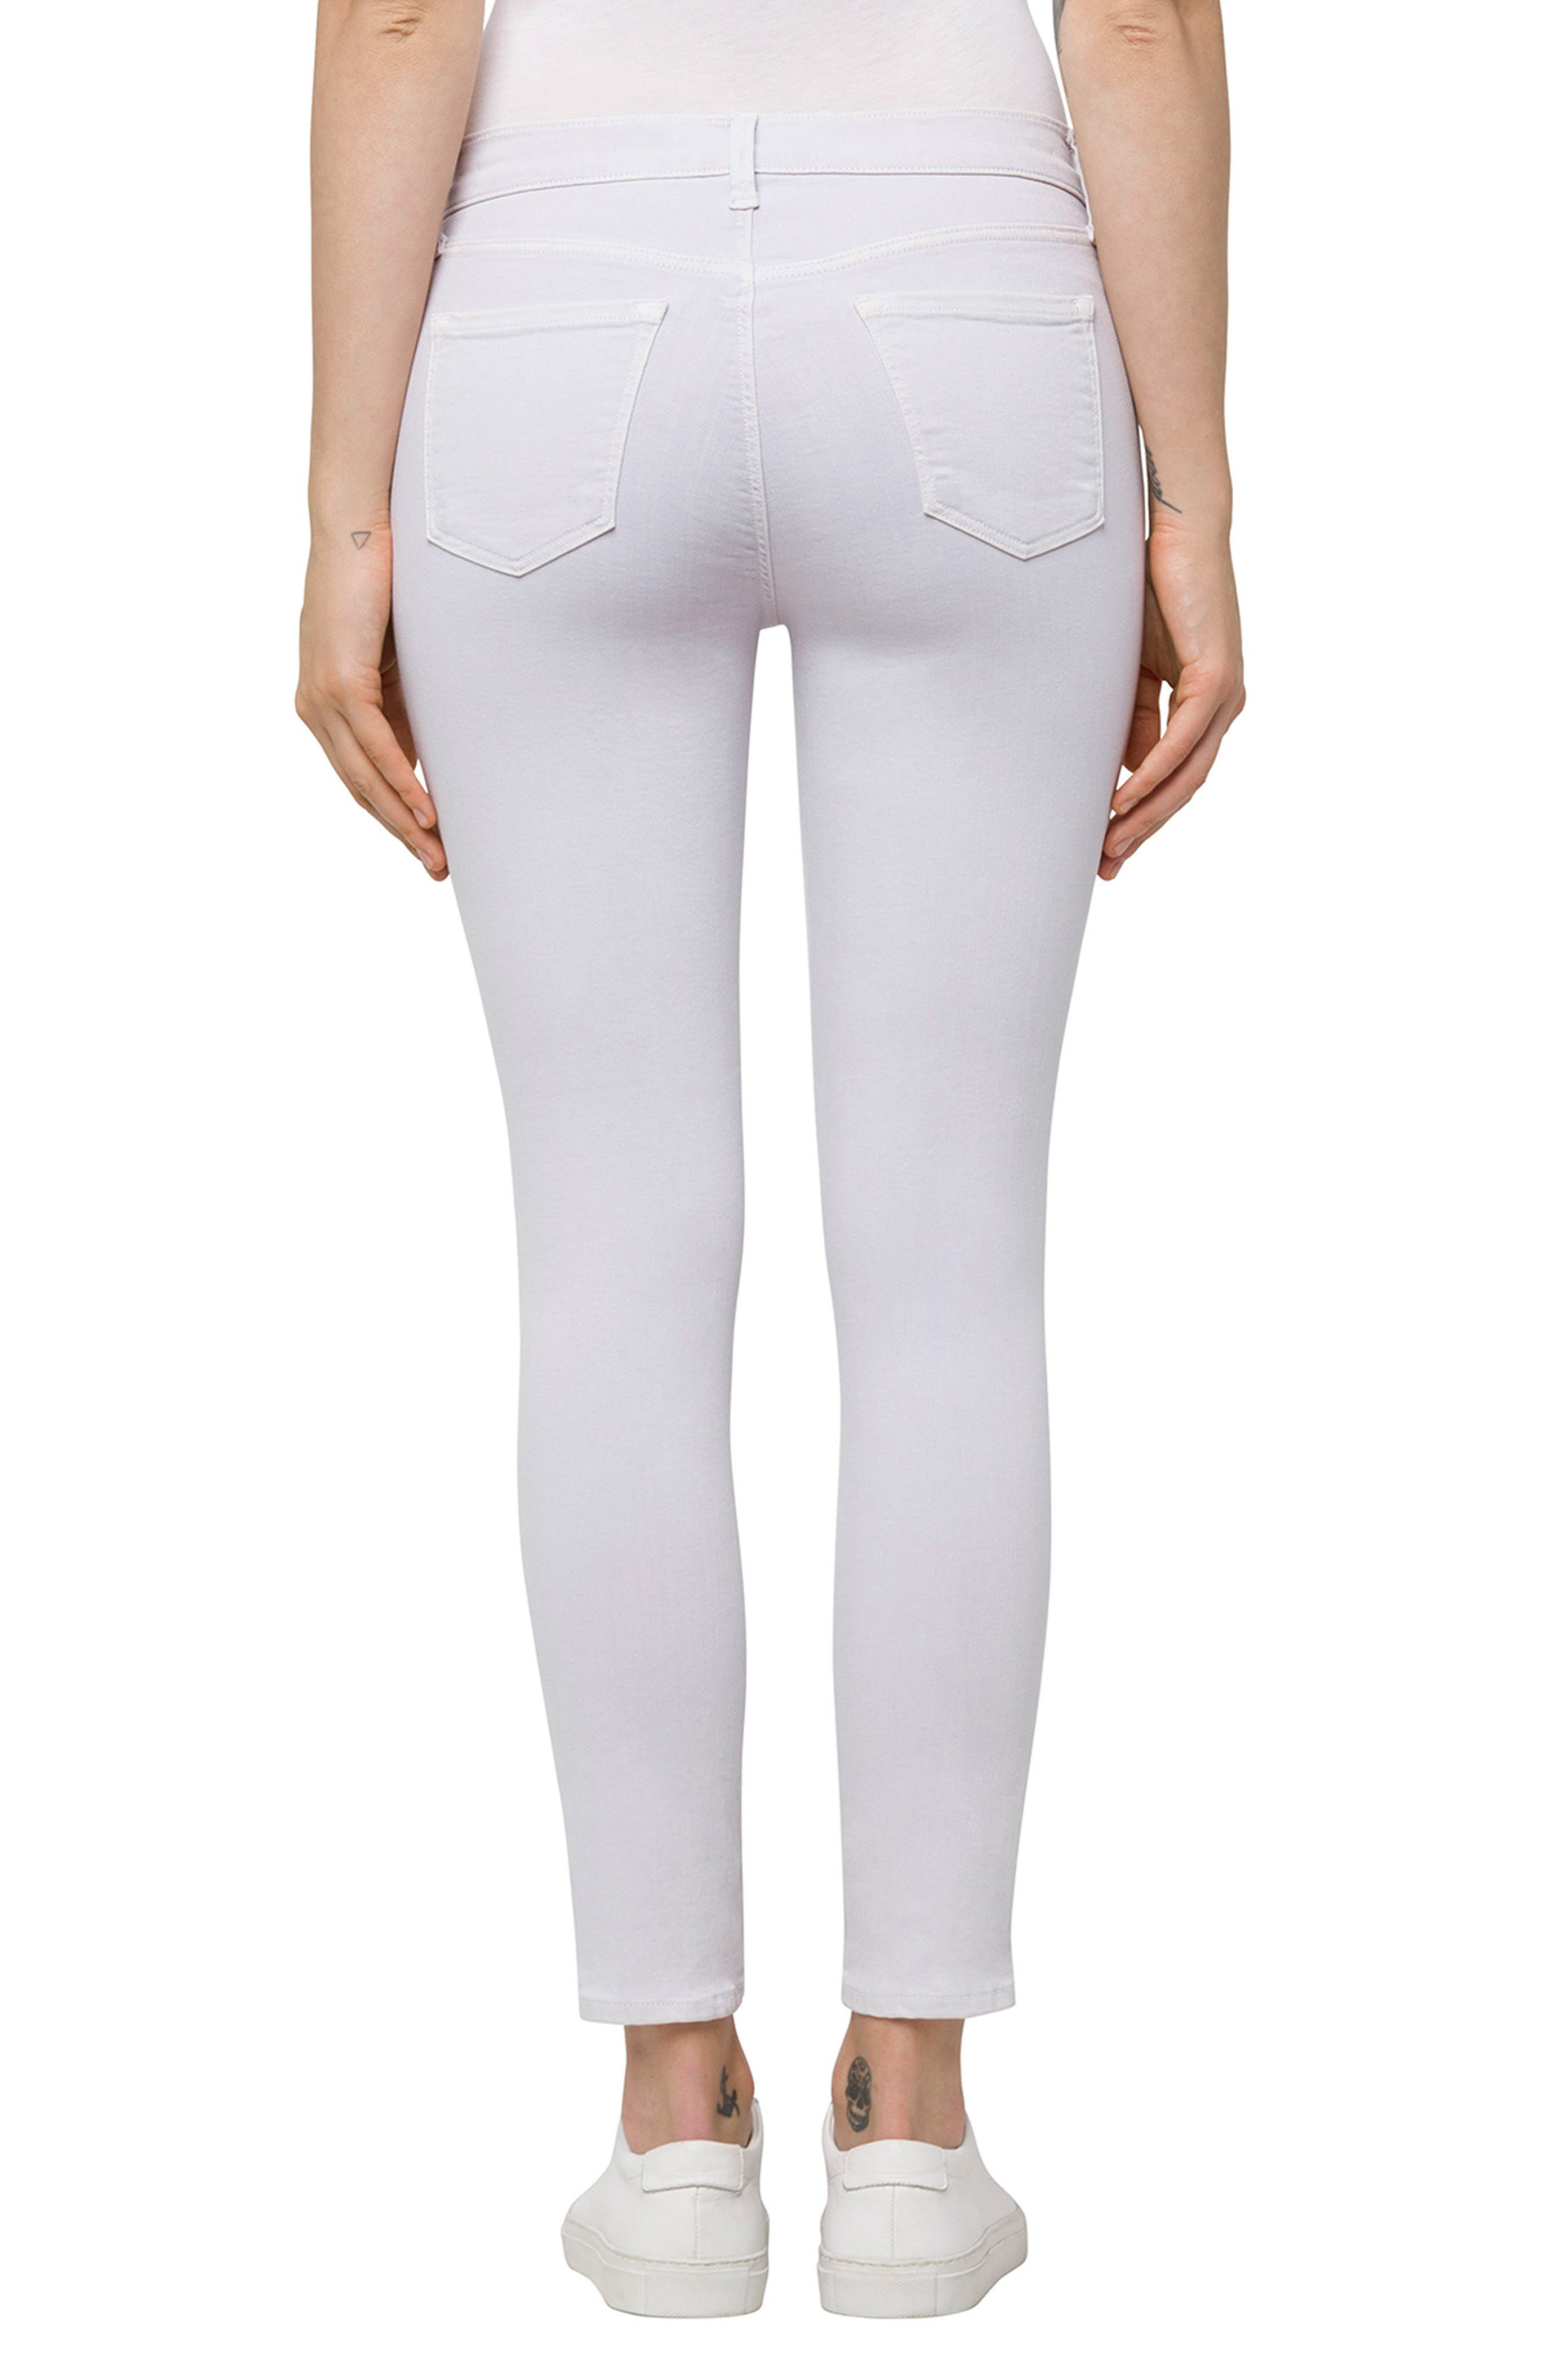 835 Capri Skinny Jeans,                             Alternate thumbnail 2, color,                             Frosted Amethyst